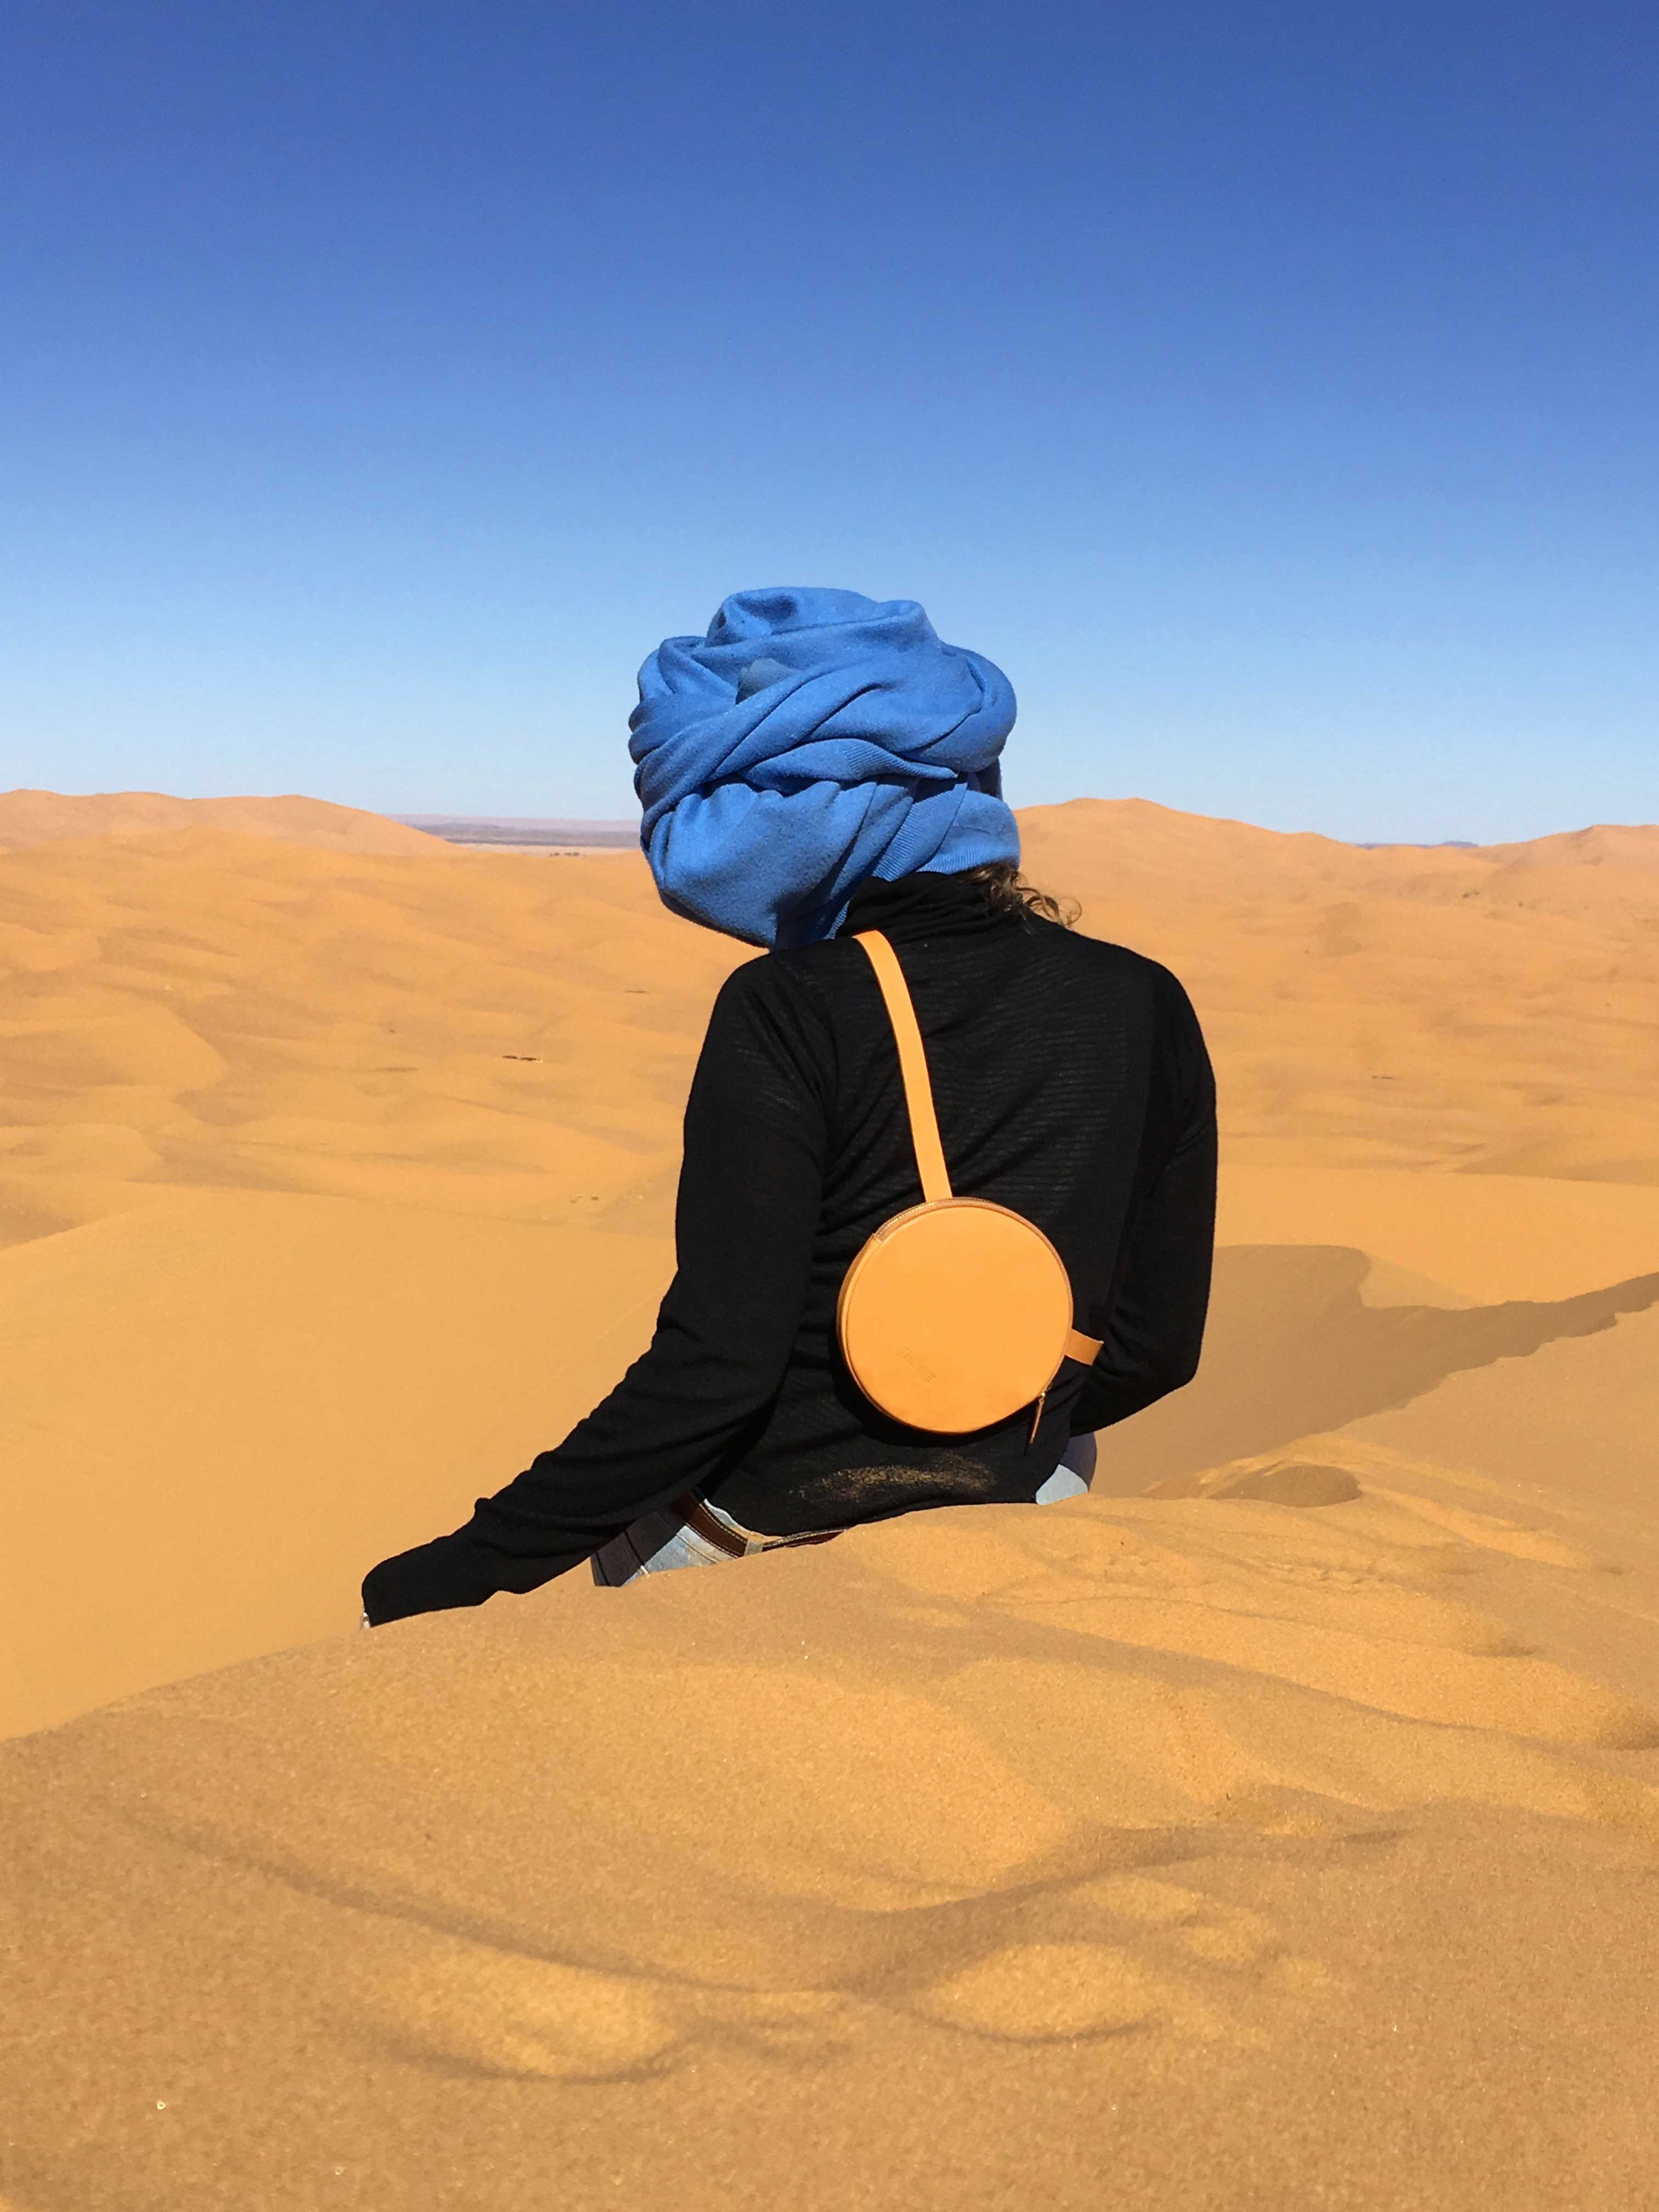 Woman in desert wearing a blue turban, a black turtleneck, a circle bag in sand color, with her back to the camera.